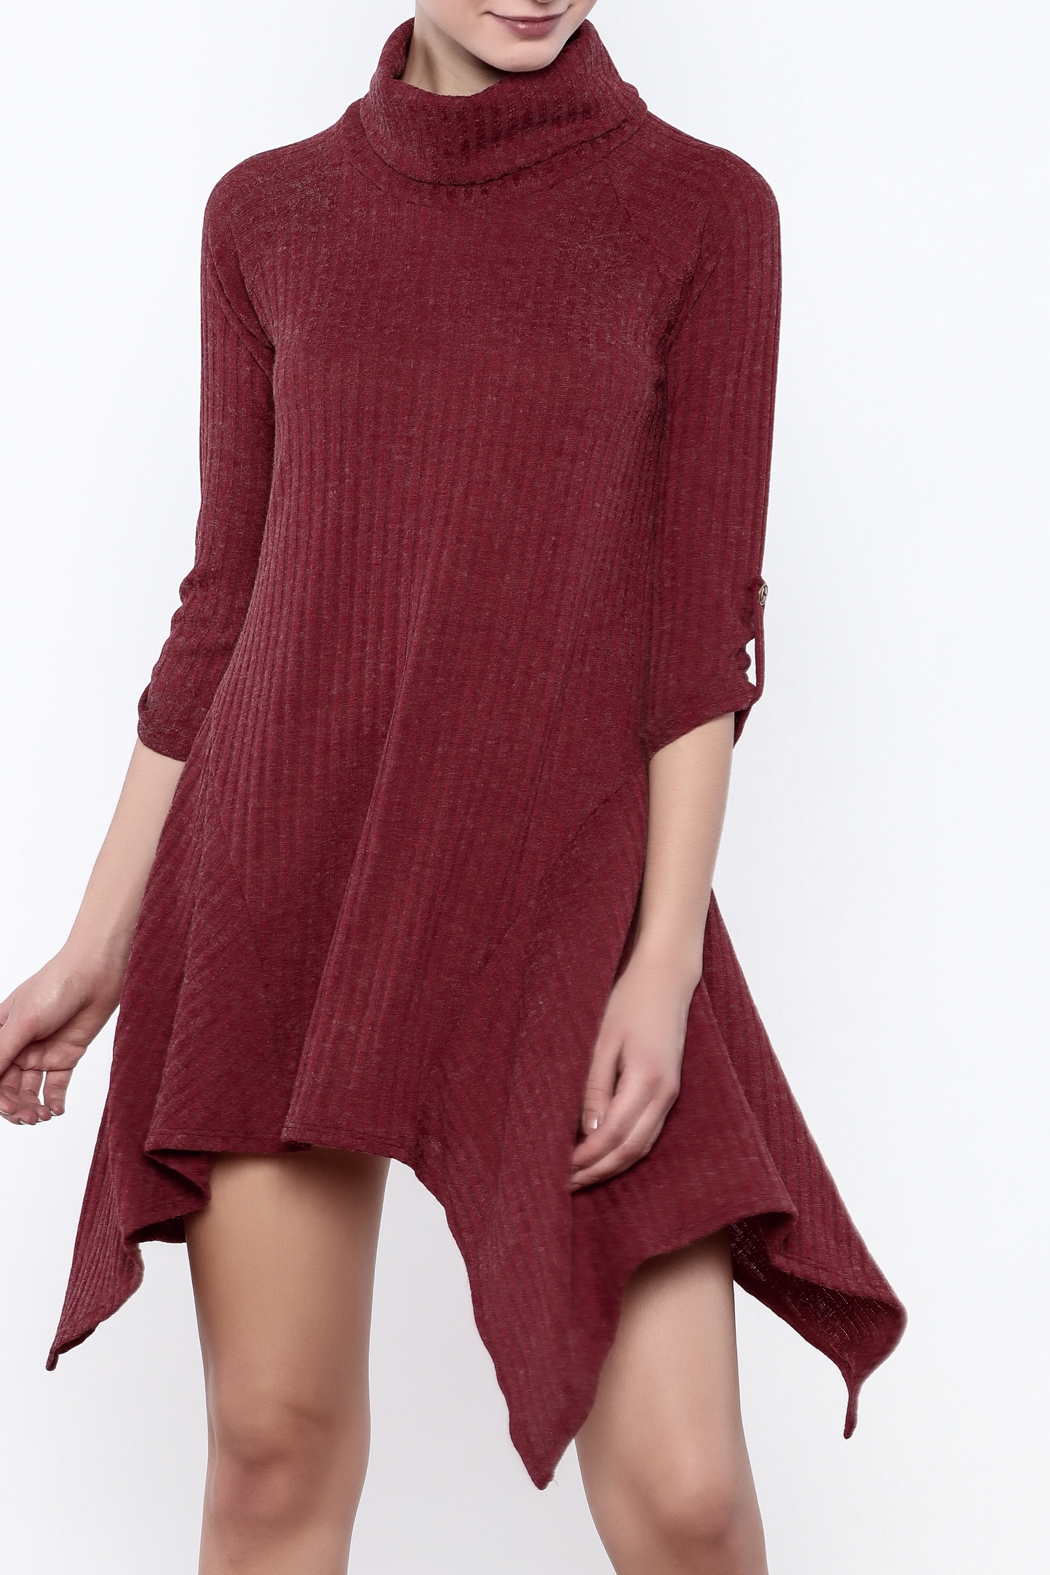 Tea n rose knit sweater dress from tennessee by white lily for Sweater over wedding dress